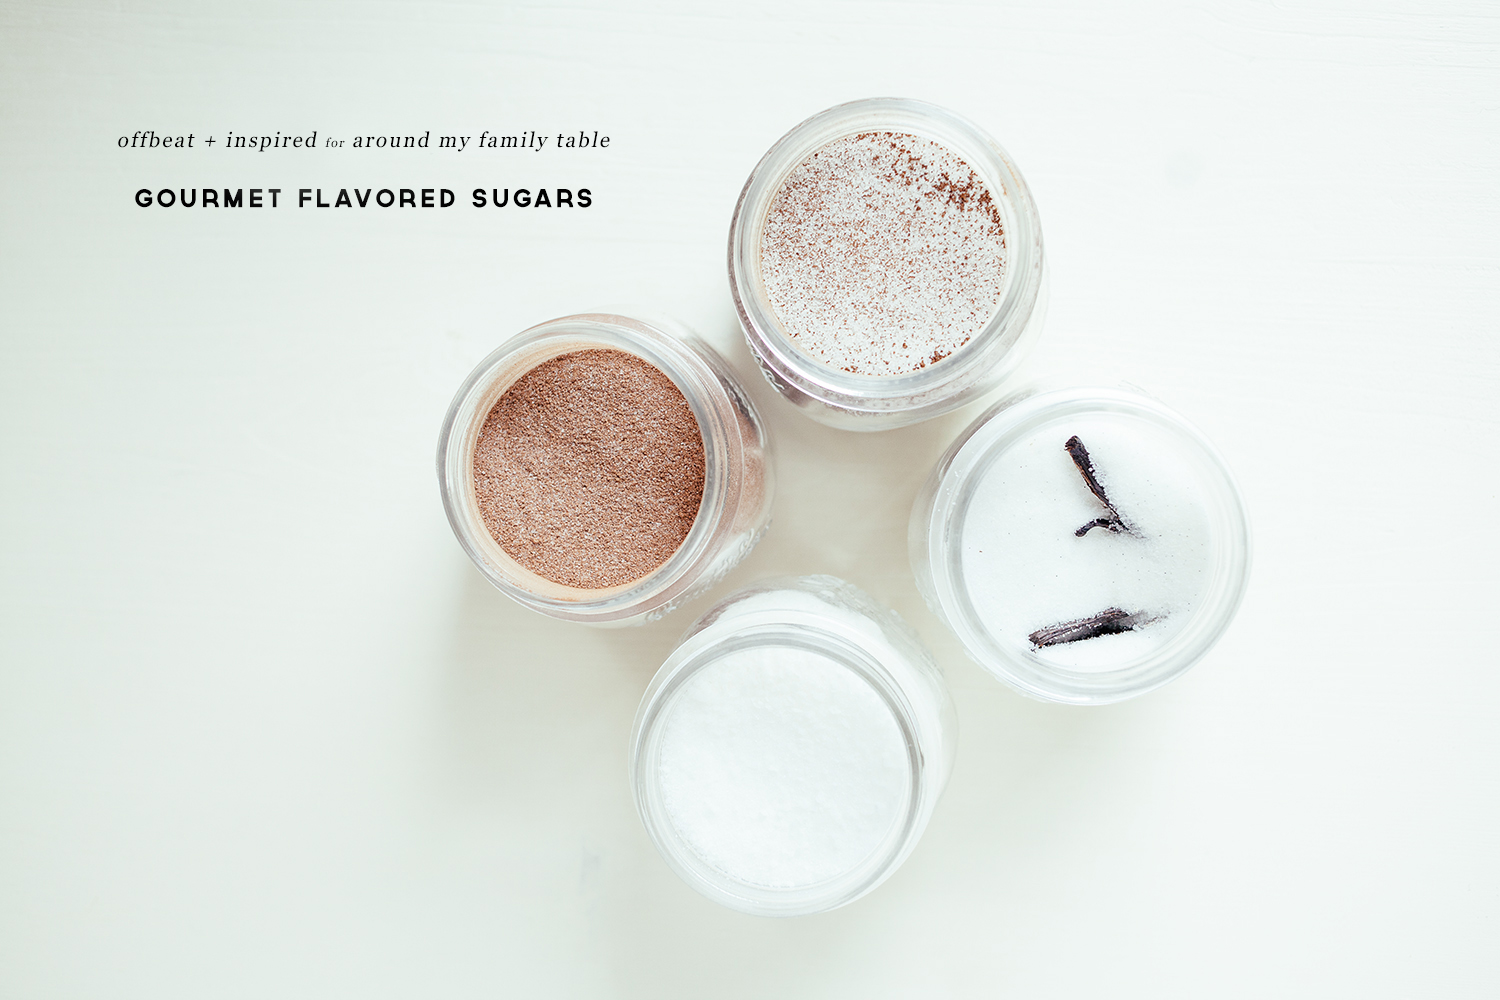 Homemade Gourmet Flavored Sugars